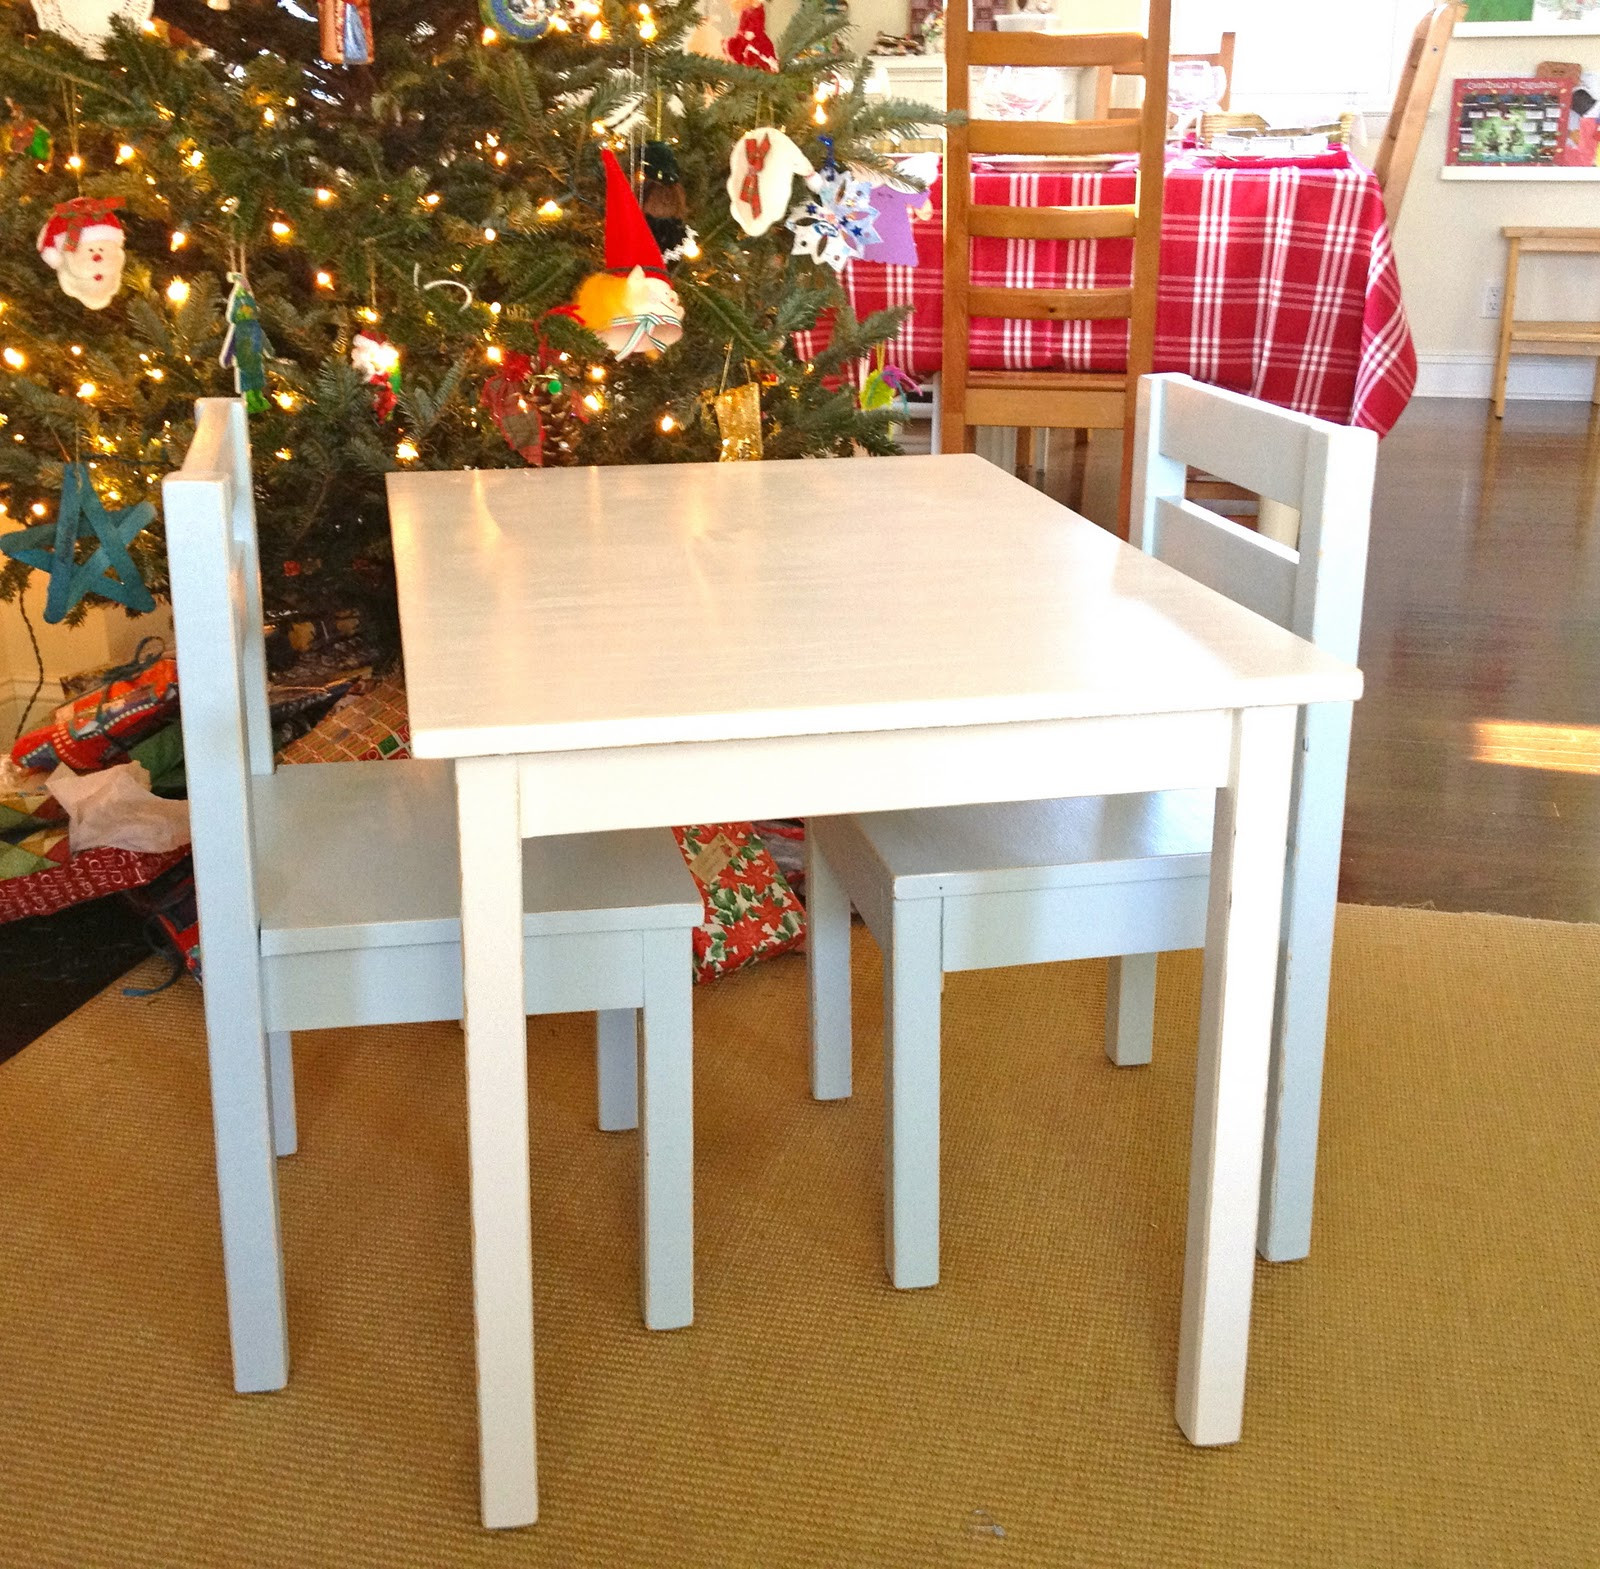 Best ideas about DIY Kids Chair . Save or Pin That s My Letter DIY Kids Table with Chairs Now.